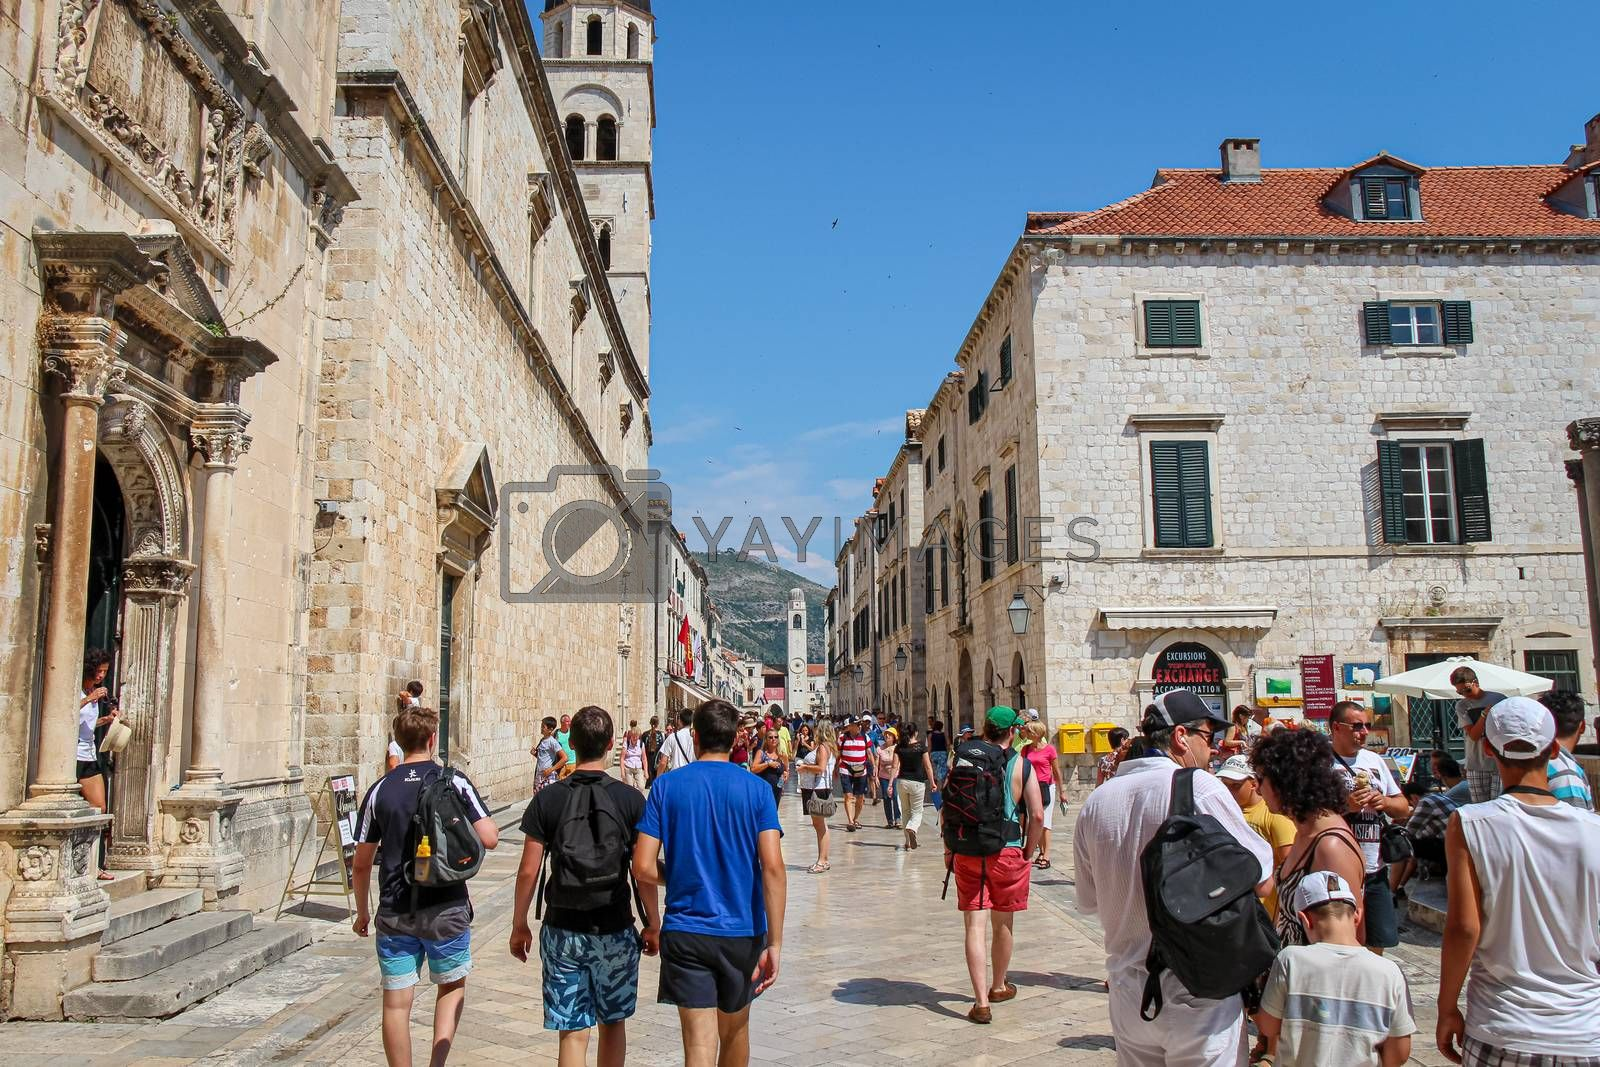 Dubrovnik, Croatia - July 15th 2018: A busy Stradun main street with tourists in summer, in the old town in Dubrovnik, Croatia